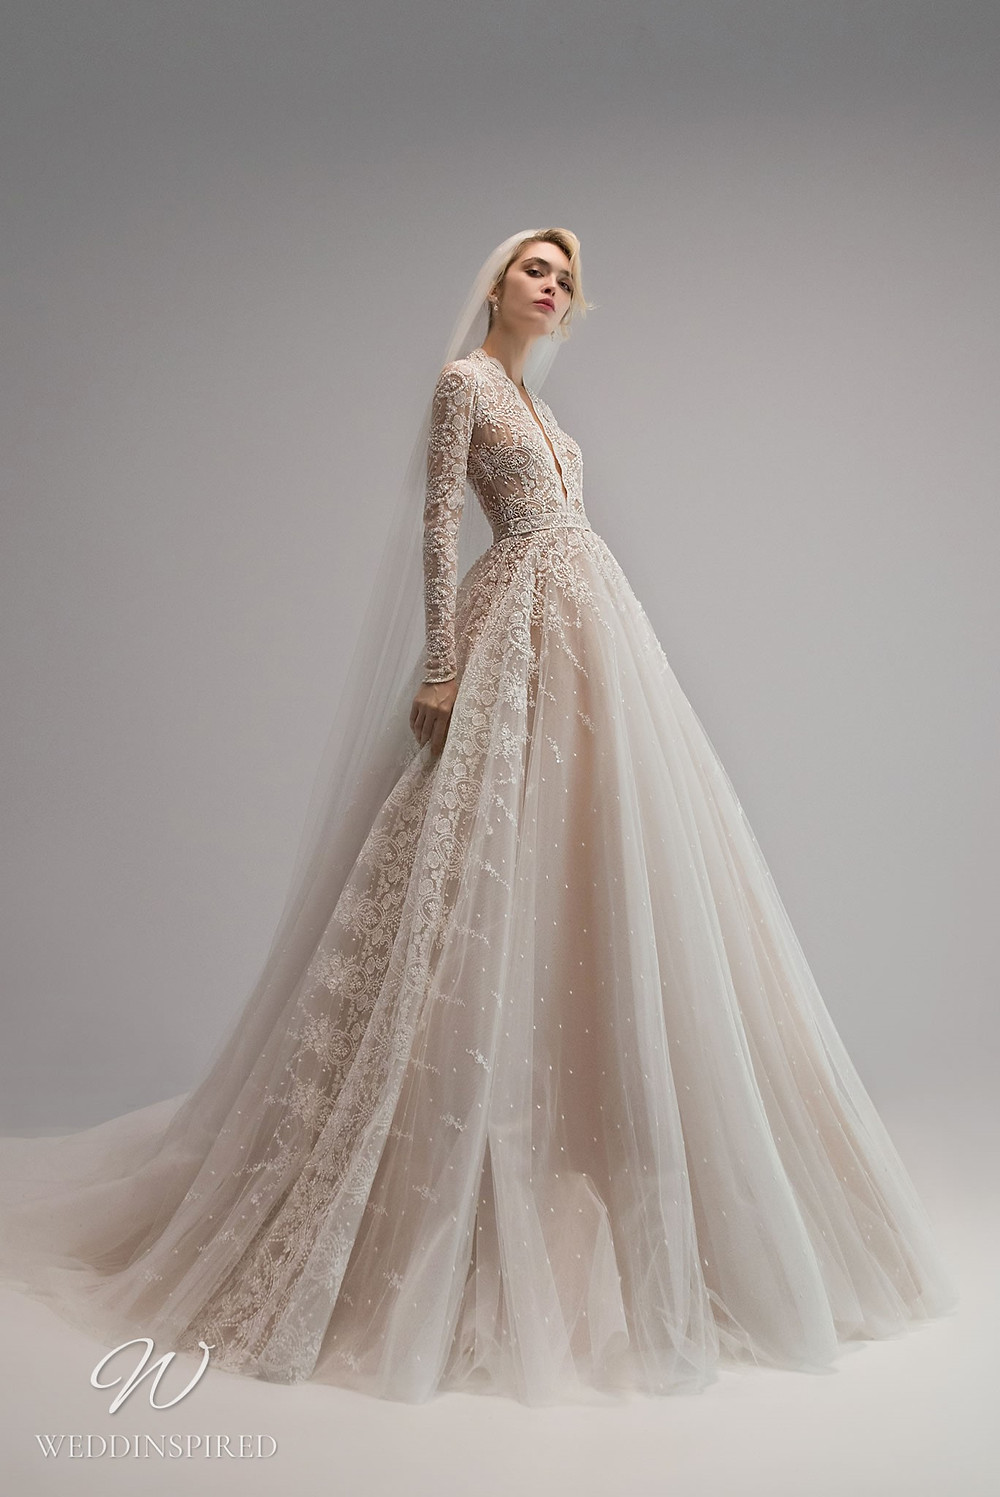 An Ersa Atelier 2021 off white tulle and lace ball gown wedding dress with long sleeves and beading